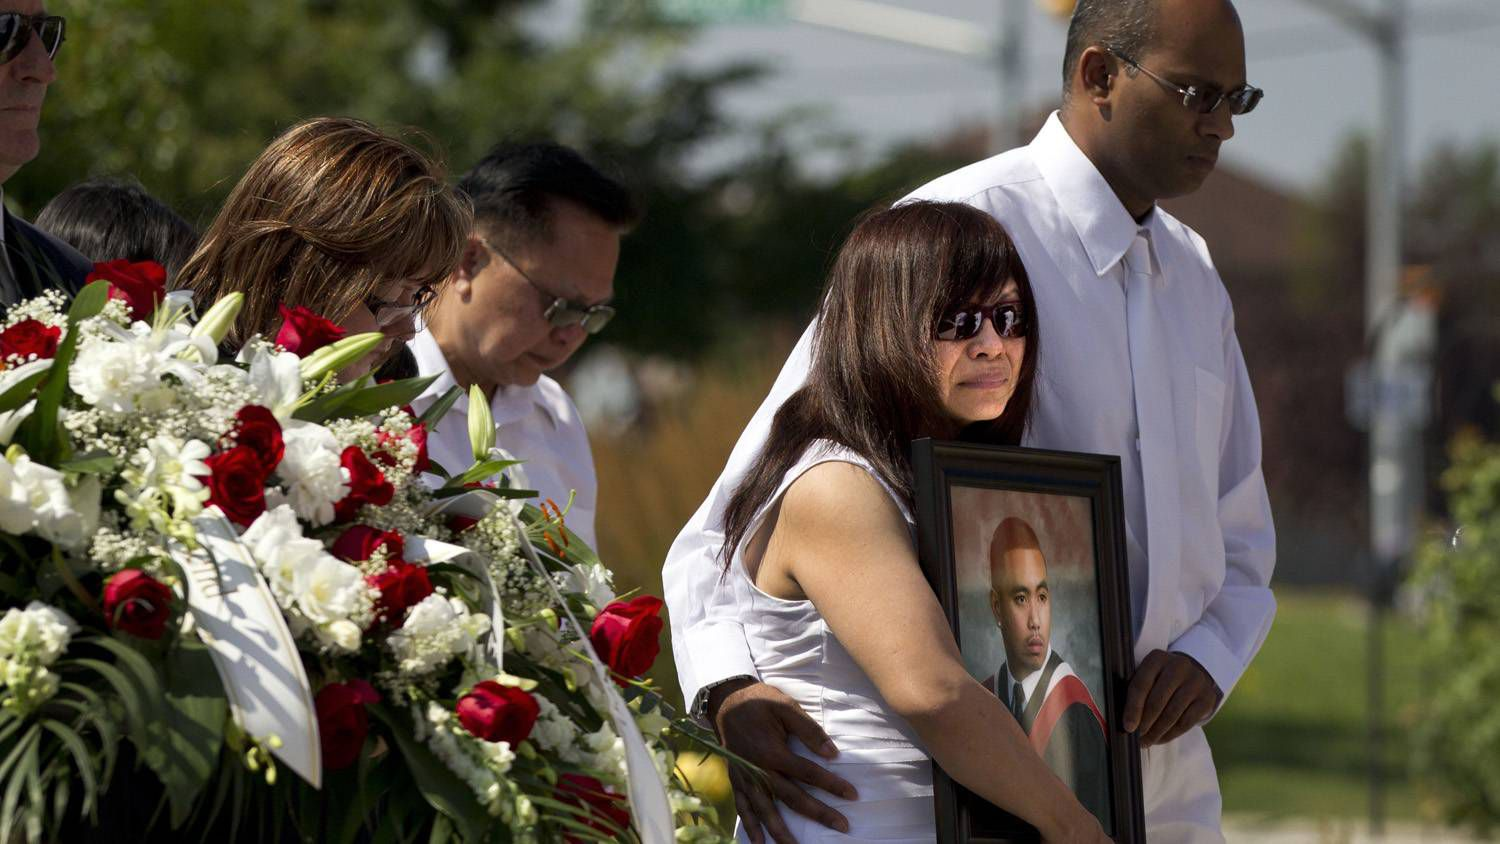 Friends Family Mourn Scarborough Shooting Victim At Funeral The